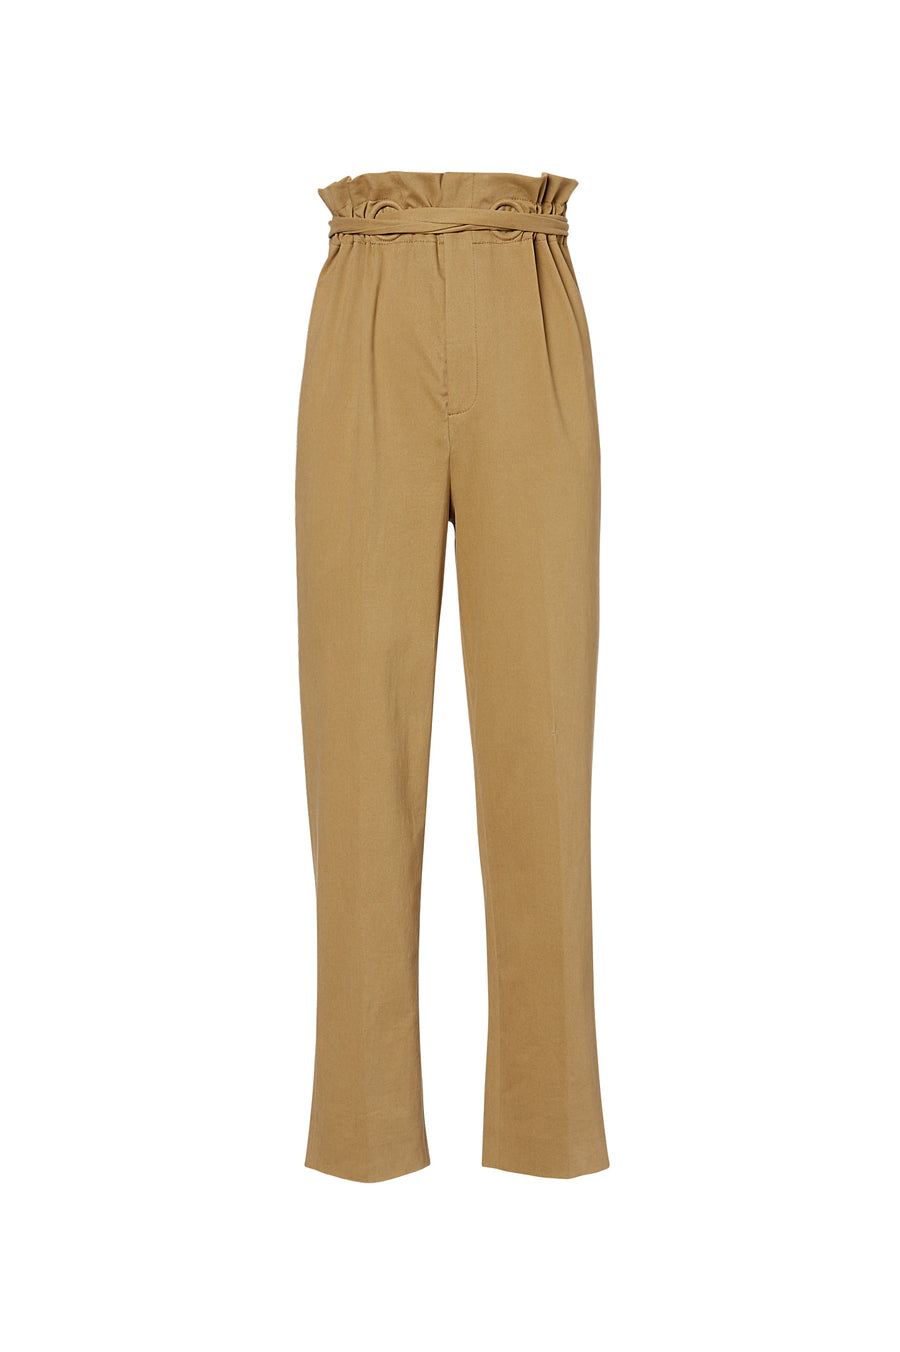 Eyelet Trouser, elastic waistband, high waist, relaxed through hip and thigh, straight leg, Color Camel